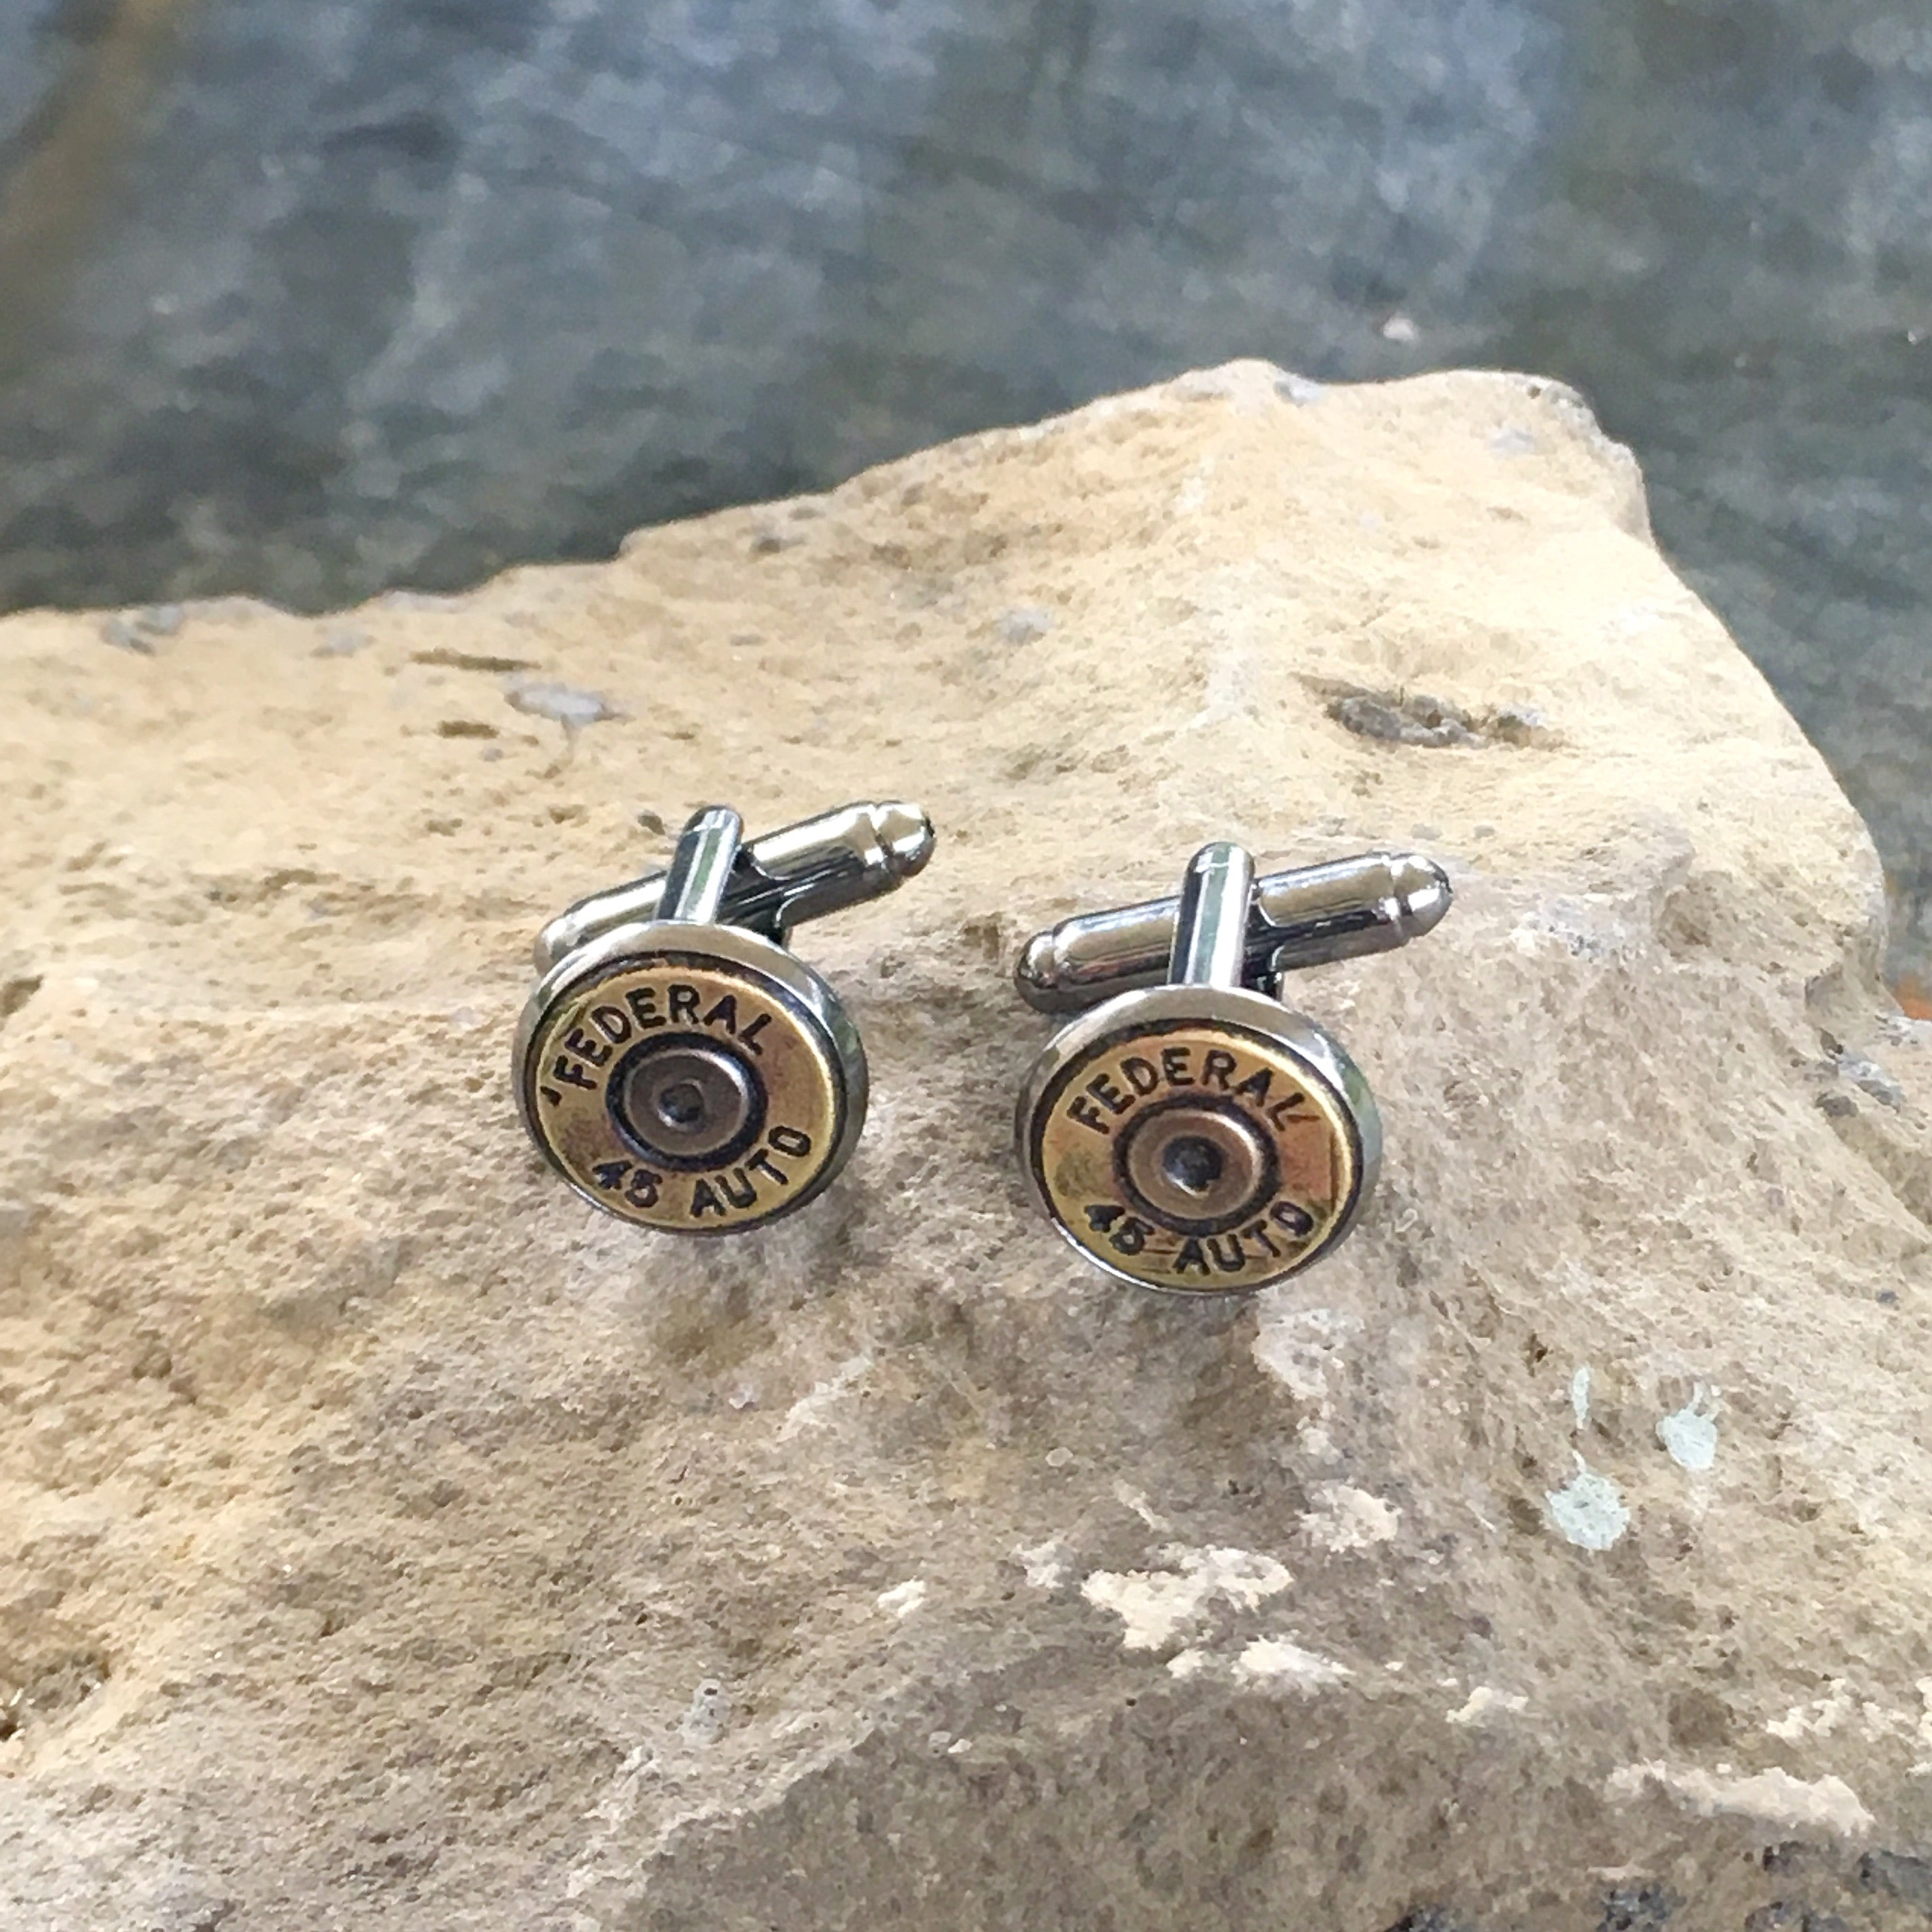 Recycled Law Enforcement Bullet Cuff Links